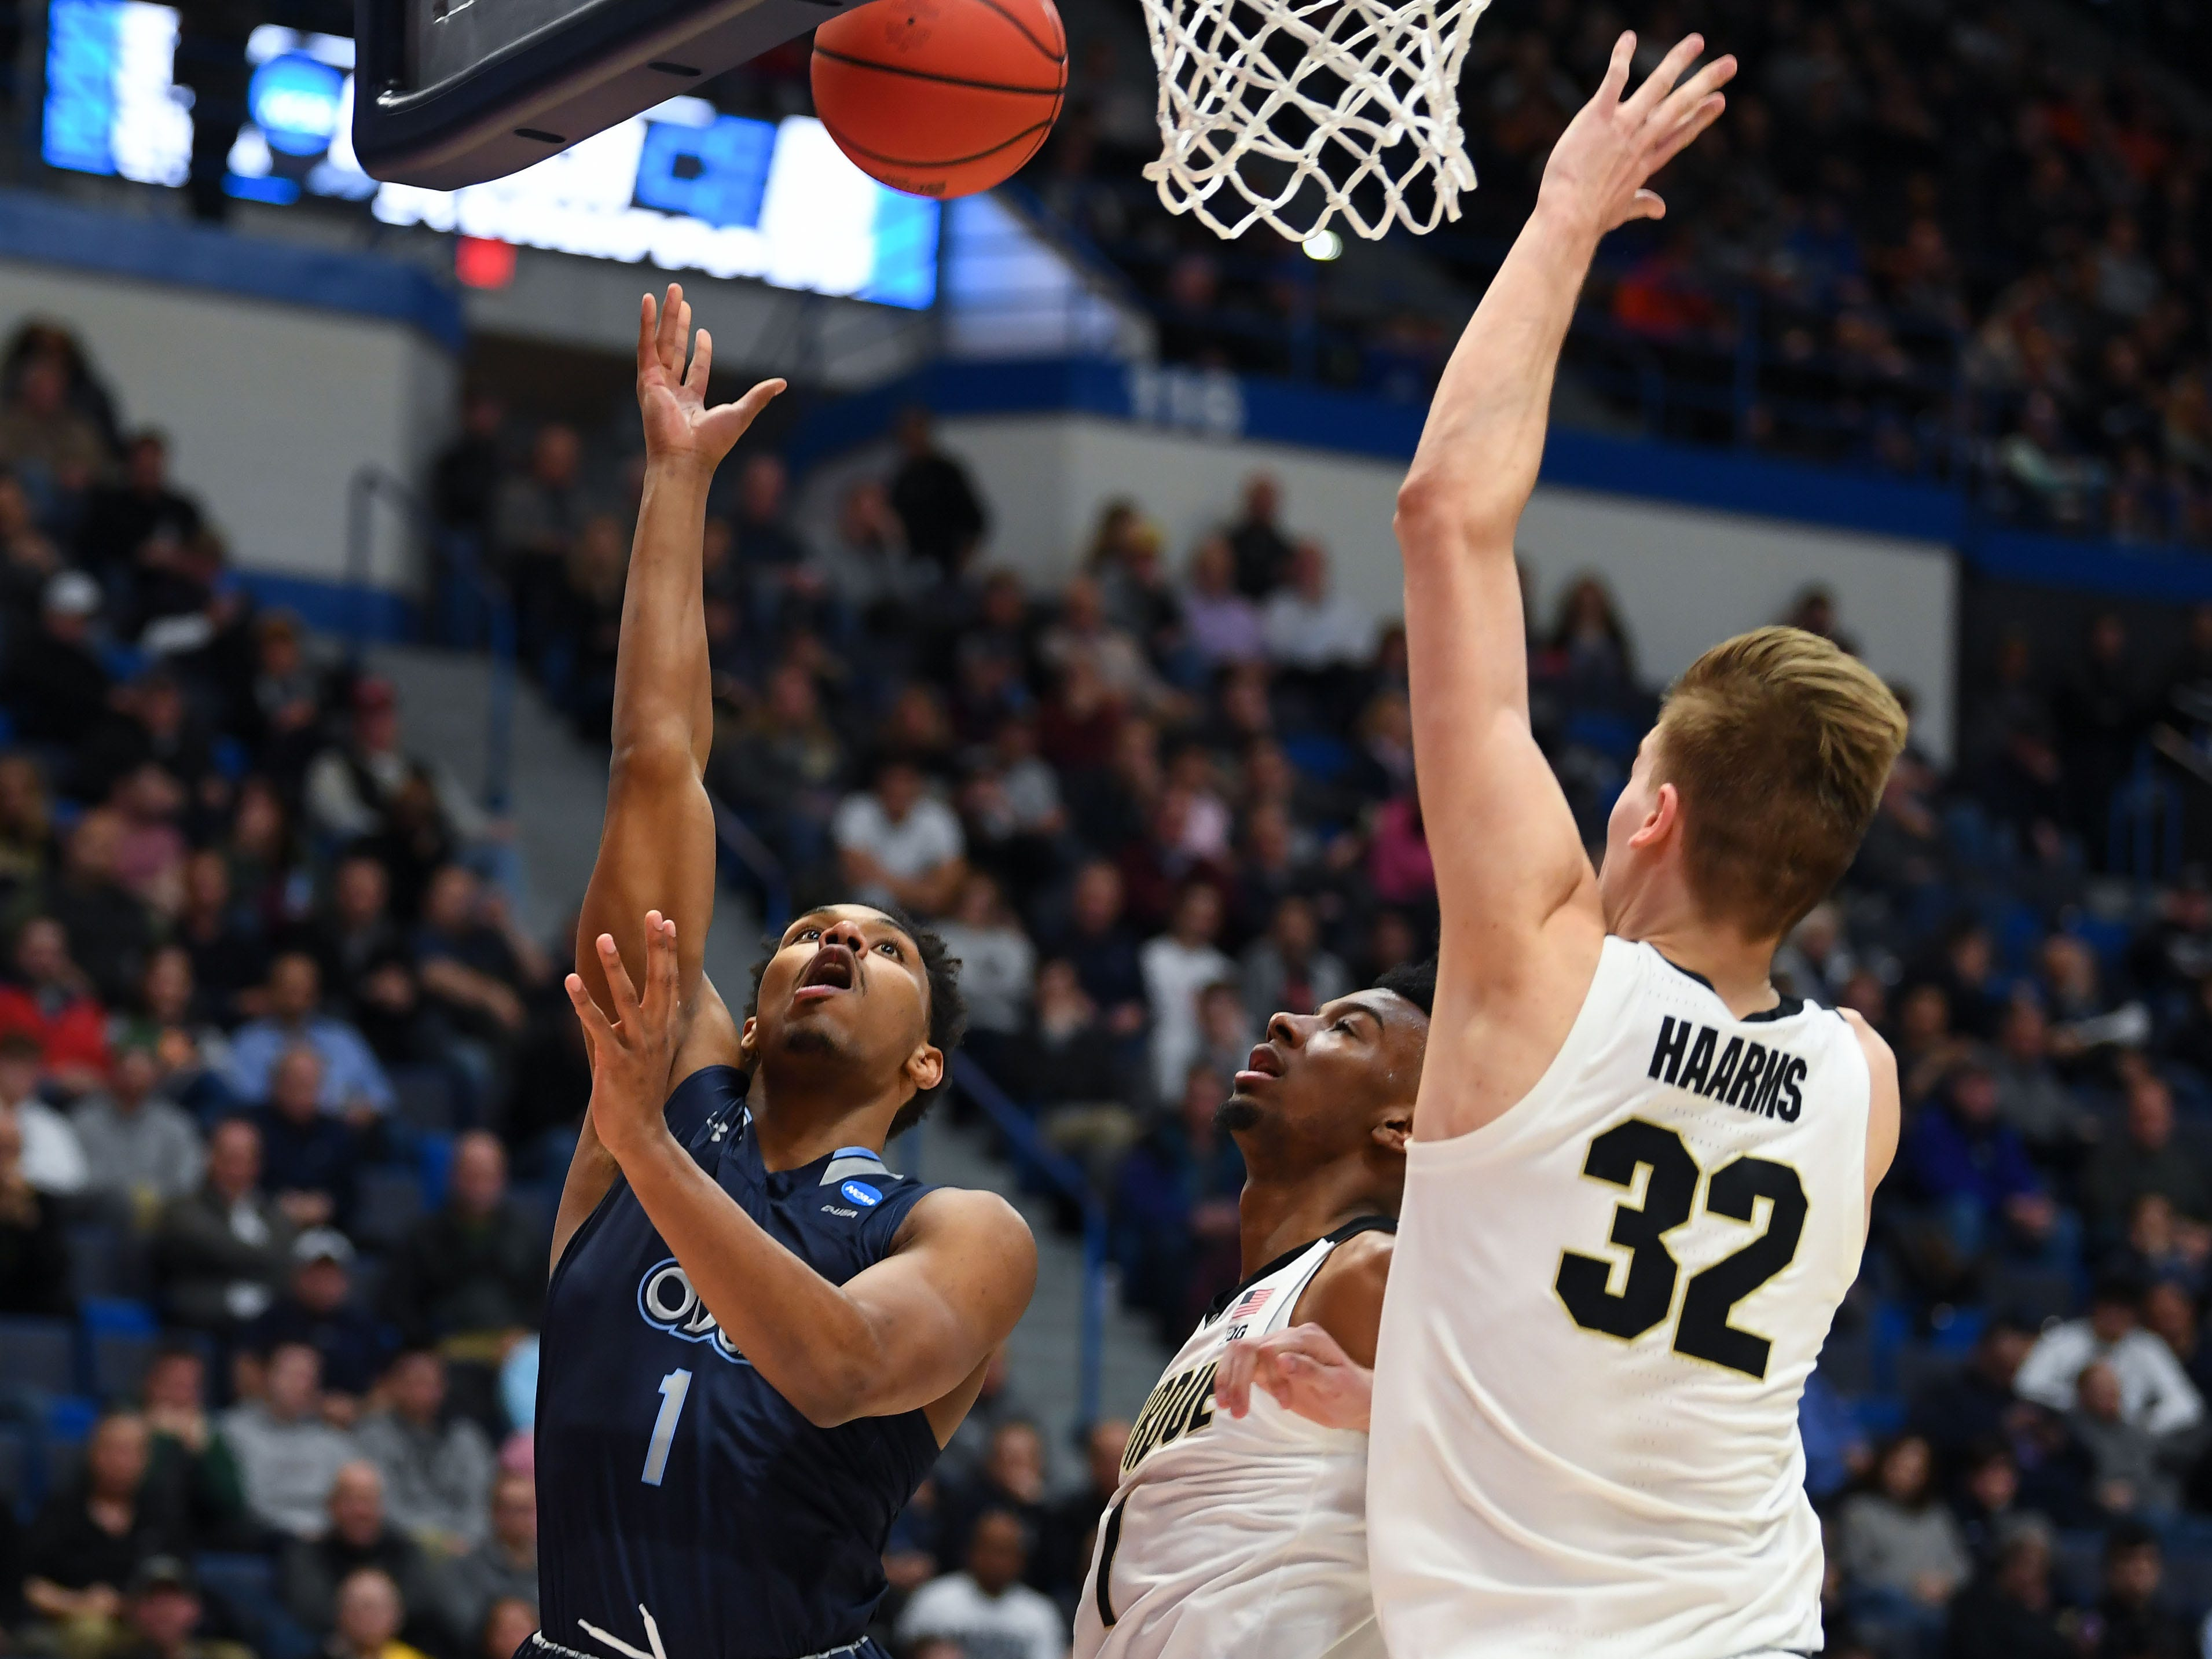 Mar 21, 2019; Hartford, CT, USA; Old Dominion Monarchs guard Jason Wade (1) attempts a layup in front of Purdue Boilermakers center Matt Haarms (32) during the first half of a game in the first round of the 2019 NCAA Tournament at XL Center. Mandatory Credit: Robert Deutsch-USA TODAY Sports